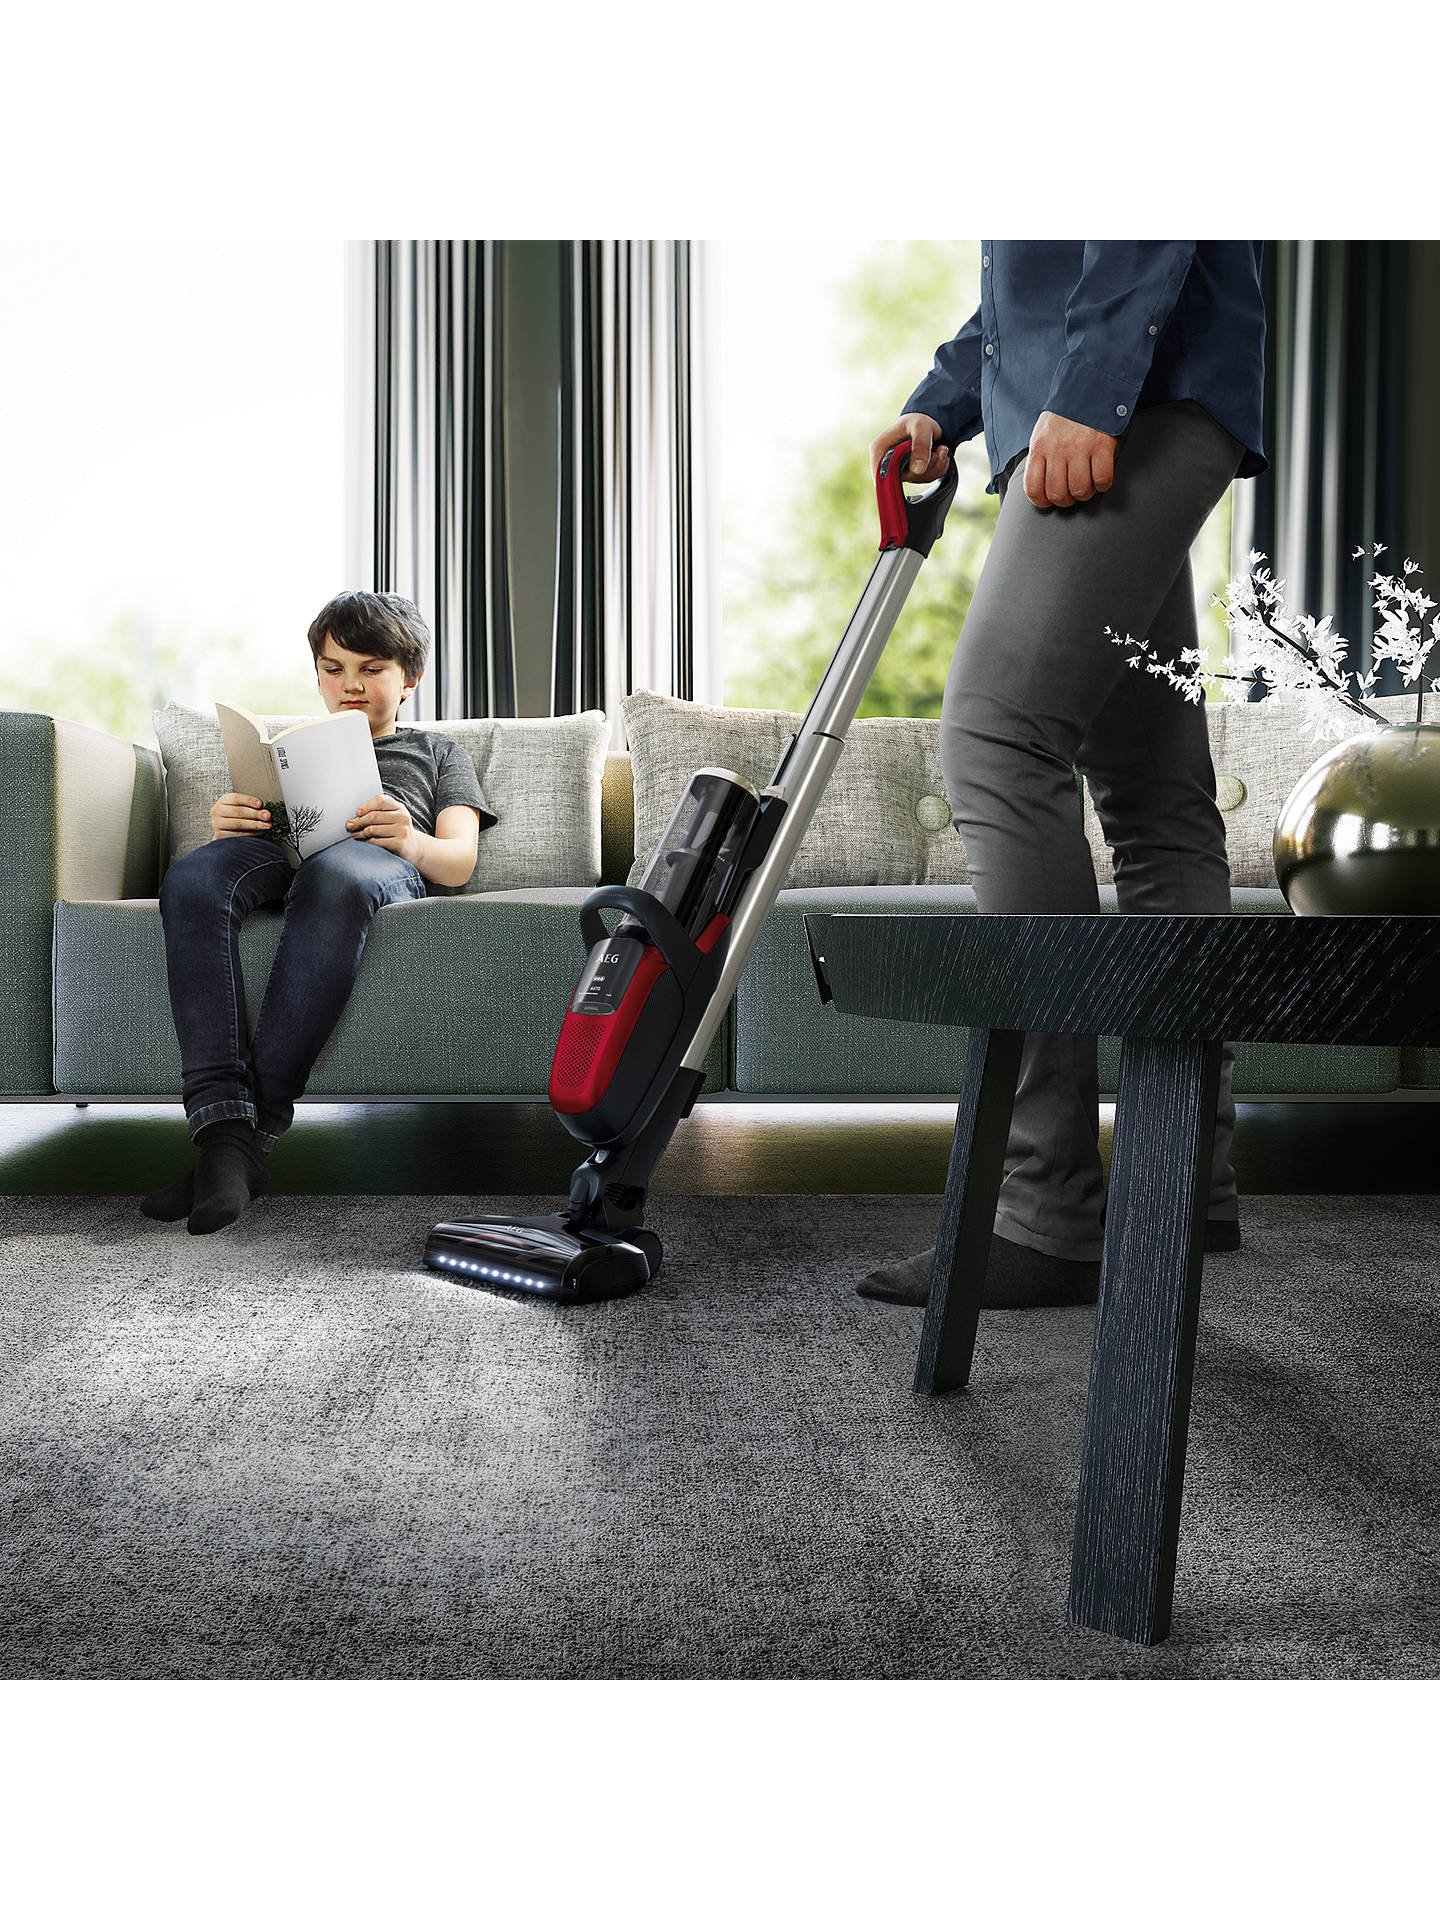 BuyAEG FX9 Ultimate Pet Cordless Vacuum Cleaner, Chilli Red Online at johnlewis.com